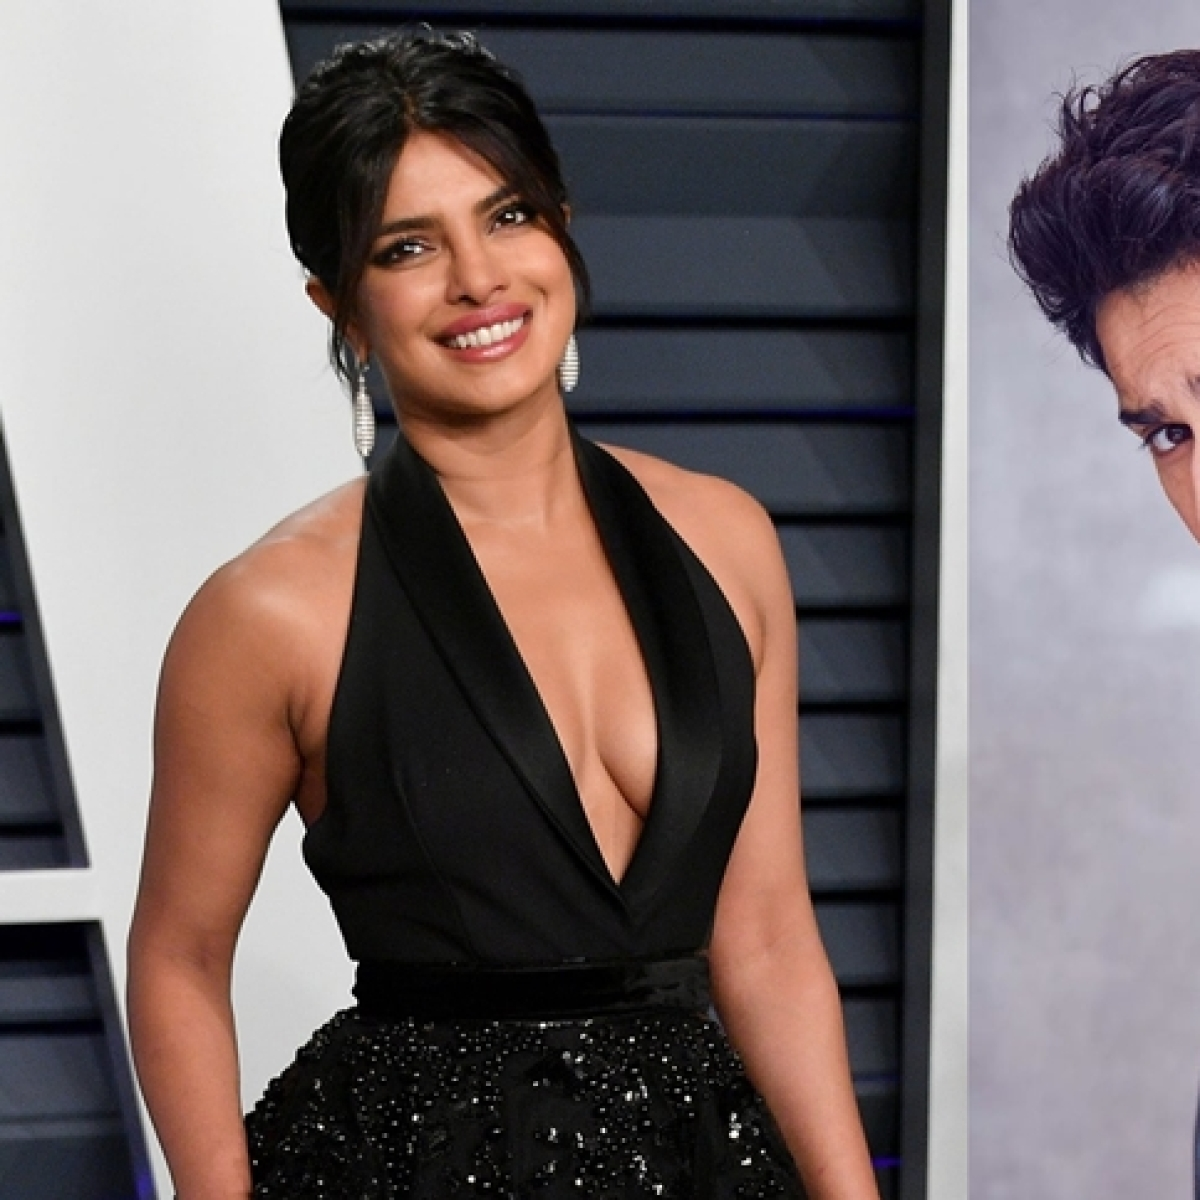 From Priyanka Chopra to Varun Dhawan, B-town celebs raise awareness on coronavirus